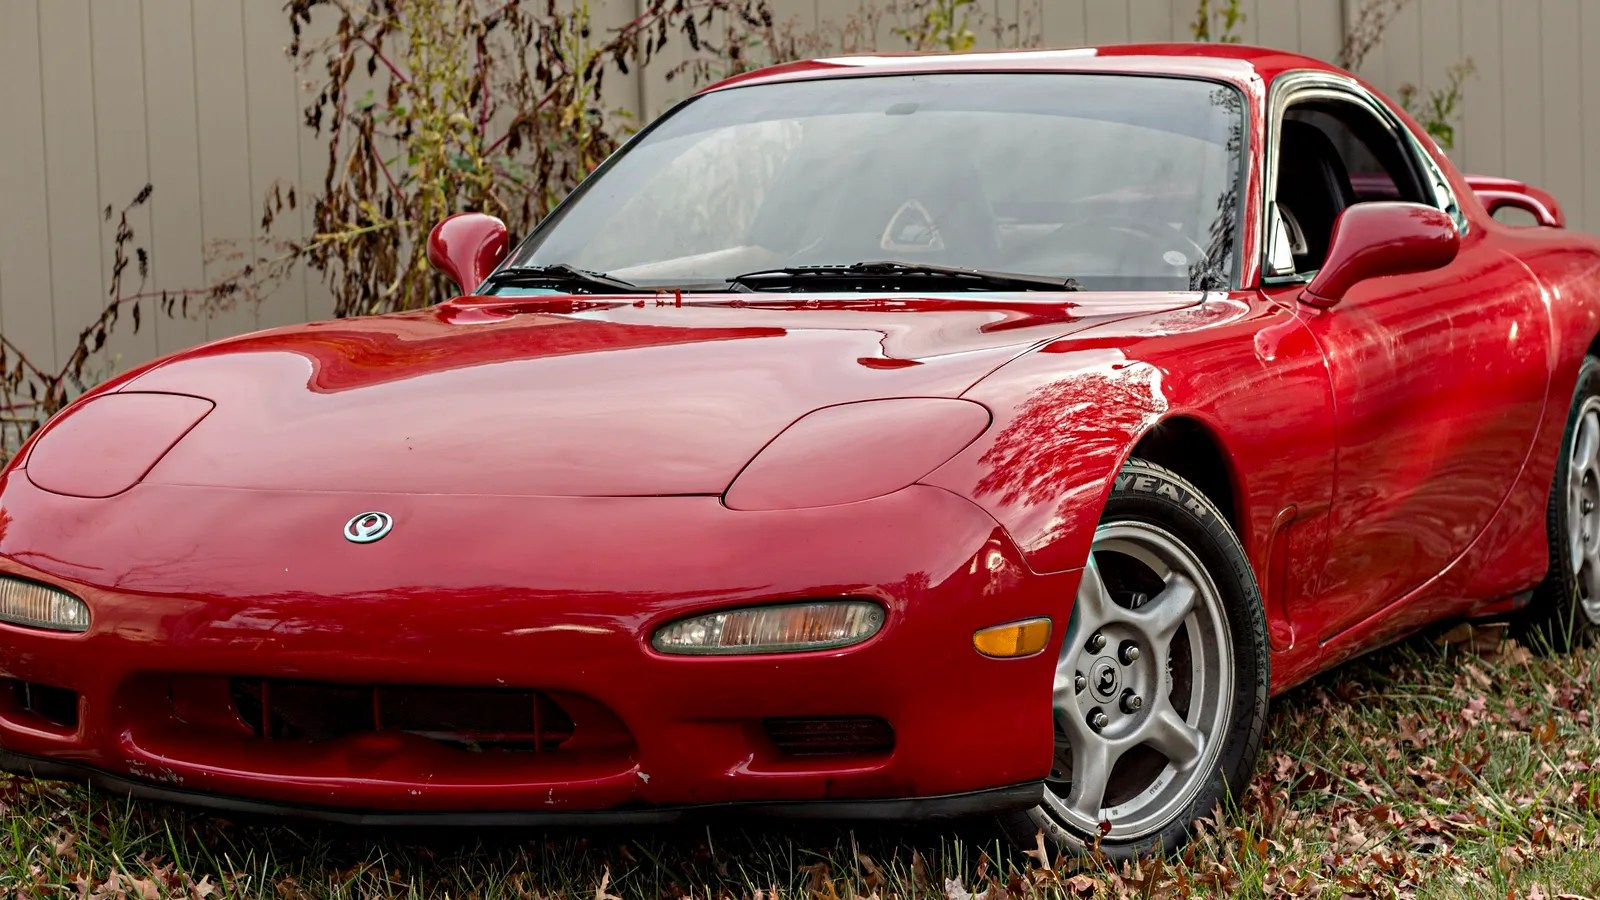 Five Reasons Why You Need To Buy An FD Mazda RX 7 Right Now